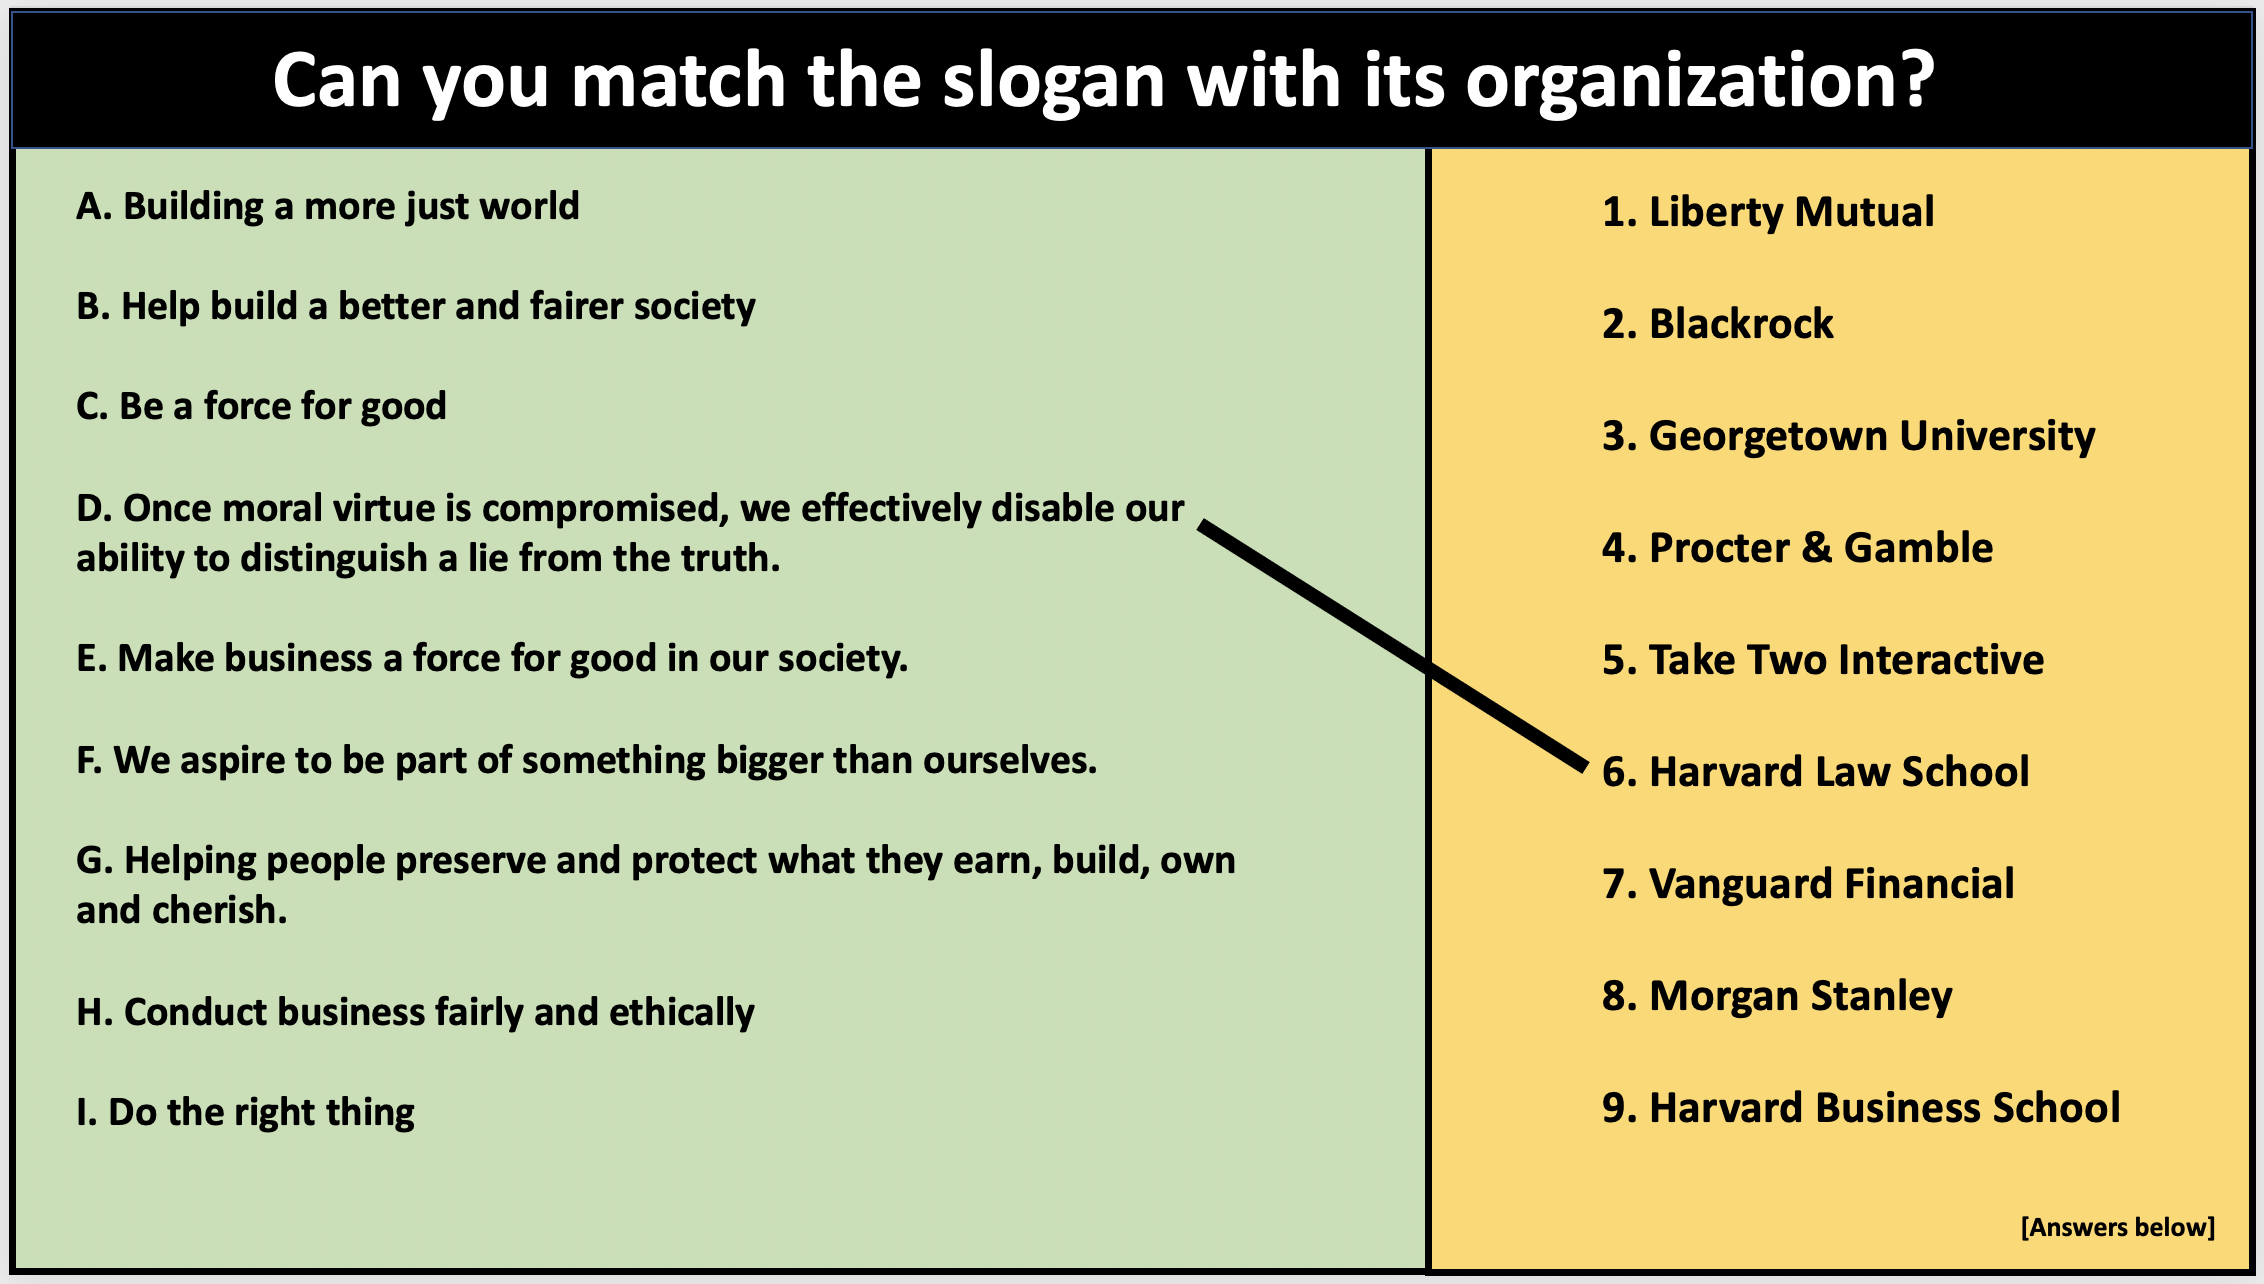 Corporations often use one set of marketing slogans, but practice a different set of values.